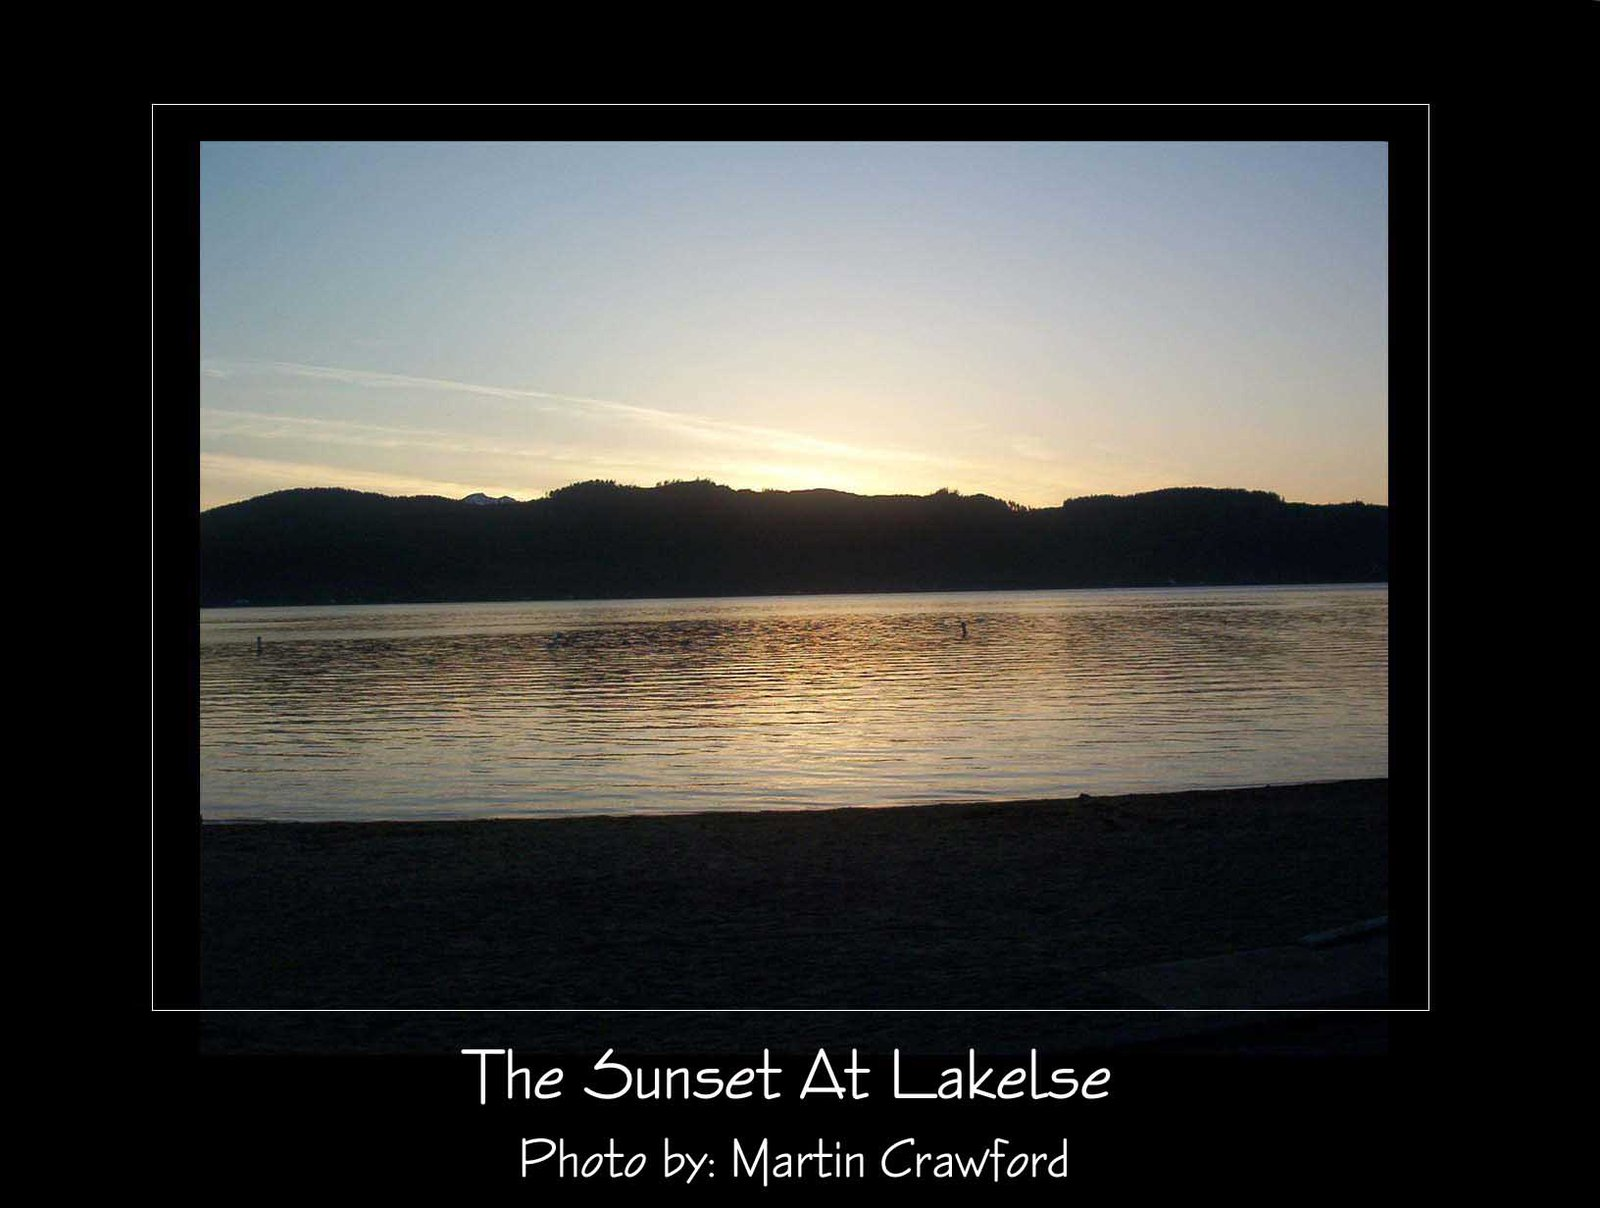 Sunset At Lakelse 1